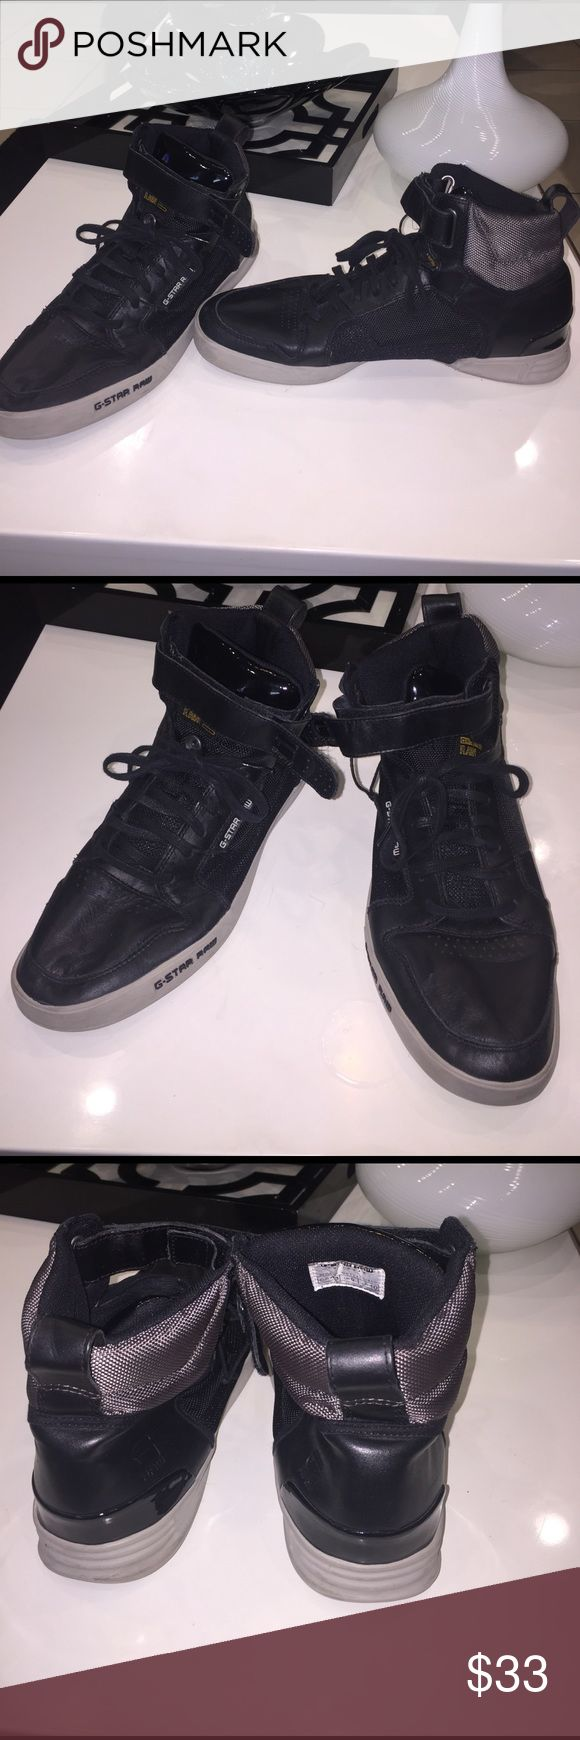 Black/Gray High-Top Sneakers 10: G-Star Raw Good condition. No flaw. Usual wear. G-Star Shoes Sneakers